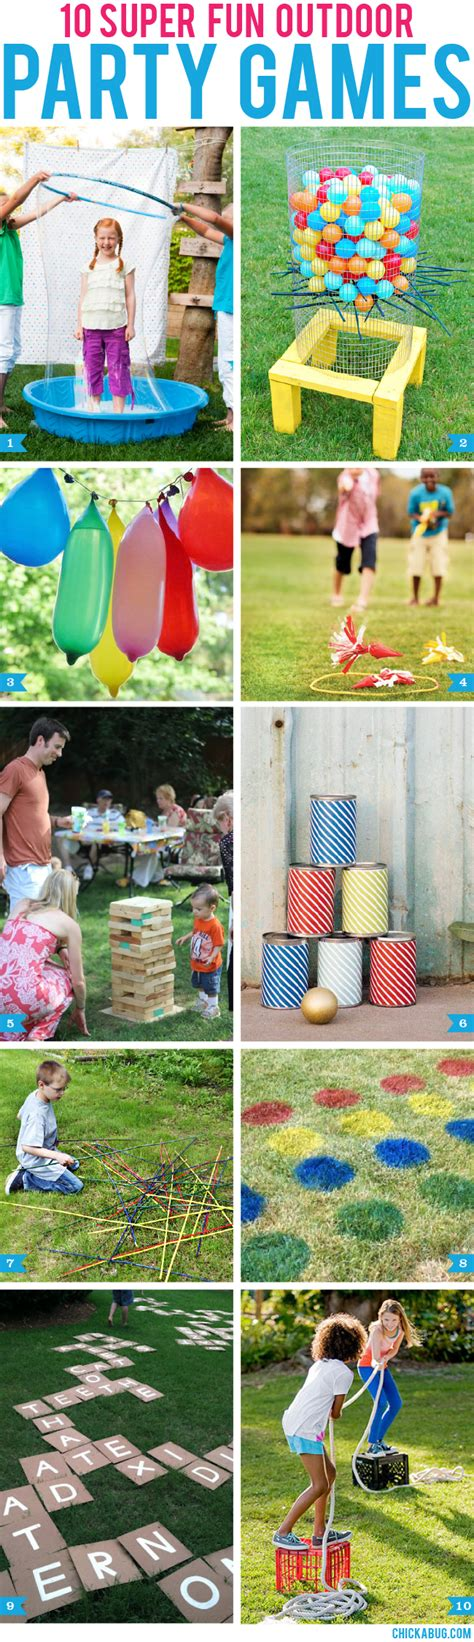 fun backyard party ideas 10 super fun outdoor party games chickabug